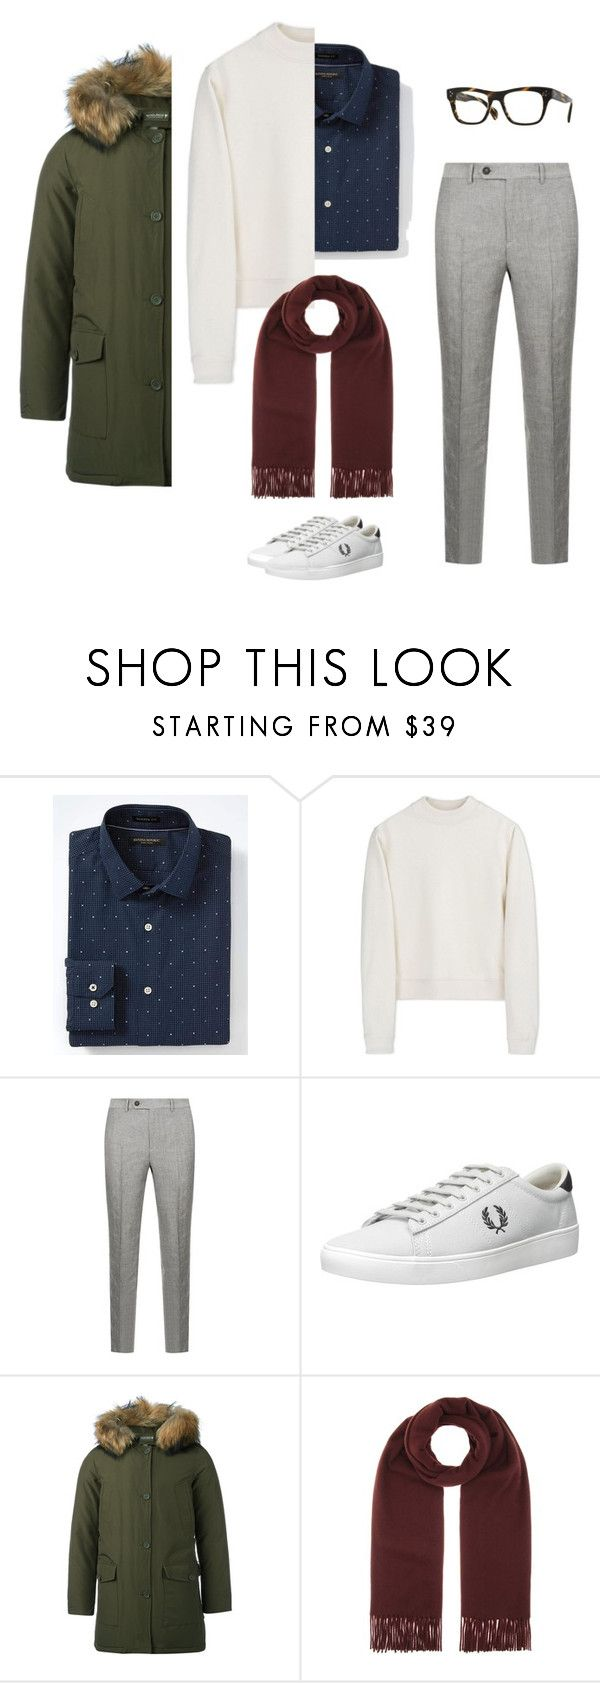 """cool hippie look2"" by yuri-writer on Polyvore featuring Banana Republic, Acne Studios, Brunello Cucinelli, Fred Perry, Woolrich, Oliver Peoples, men's fashion and menswear"